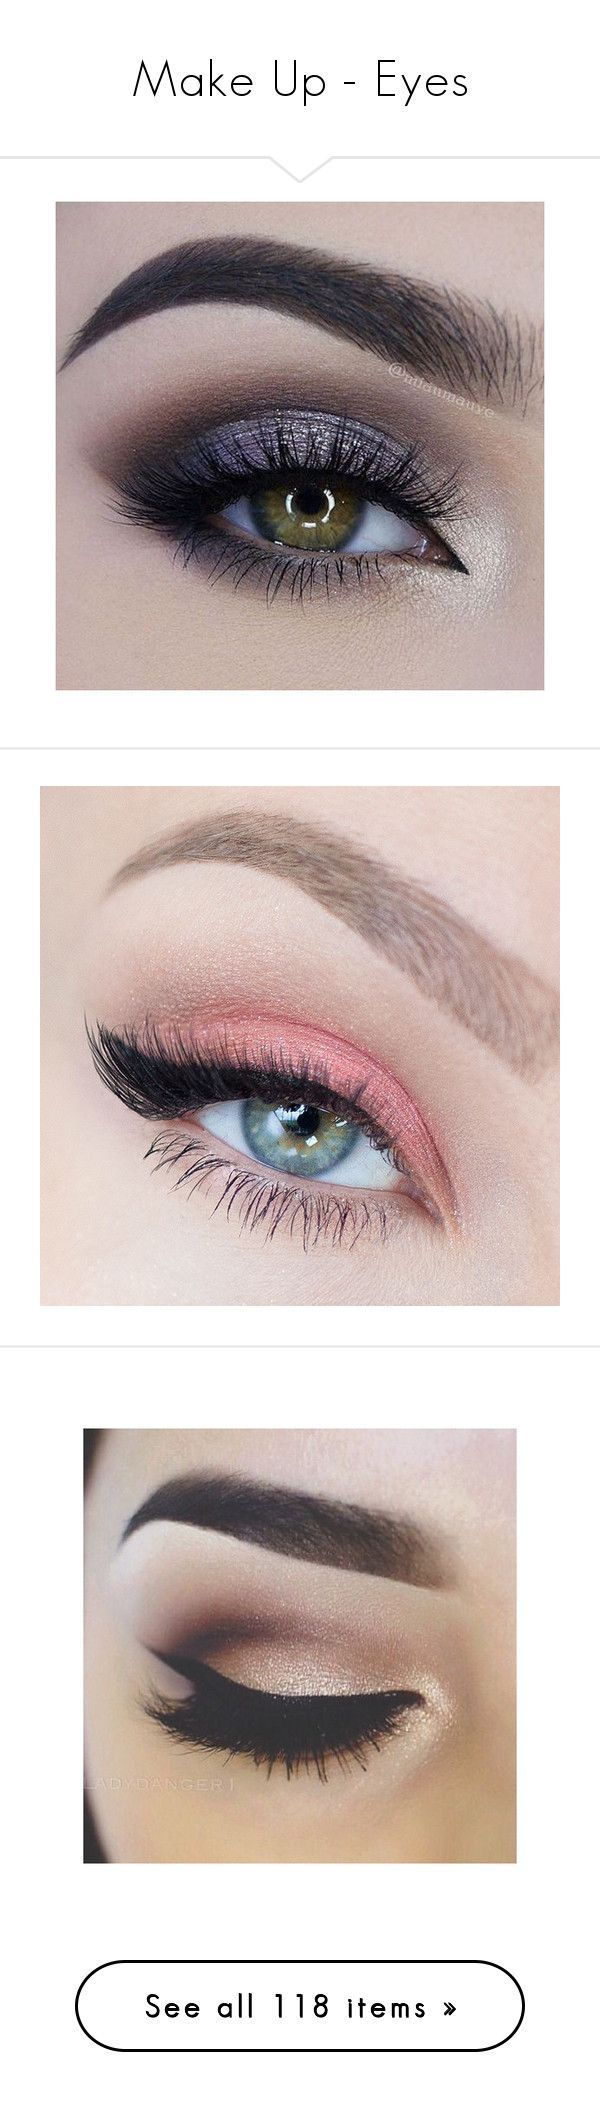 """""""Make Up - Eyes"""" by giovanna1995 ❤ liked on Polyvore featuring beauty products, makeup, eye makeup, eyes, beauty, makeup looks, eyeshadow, filler, photo and eyeliner"""